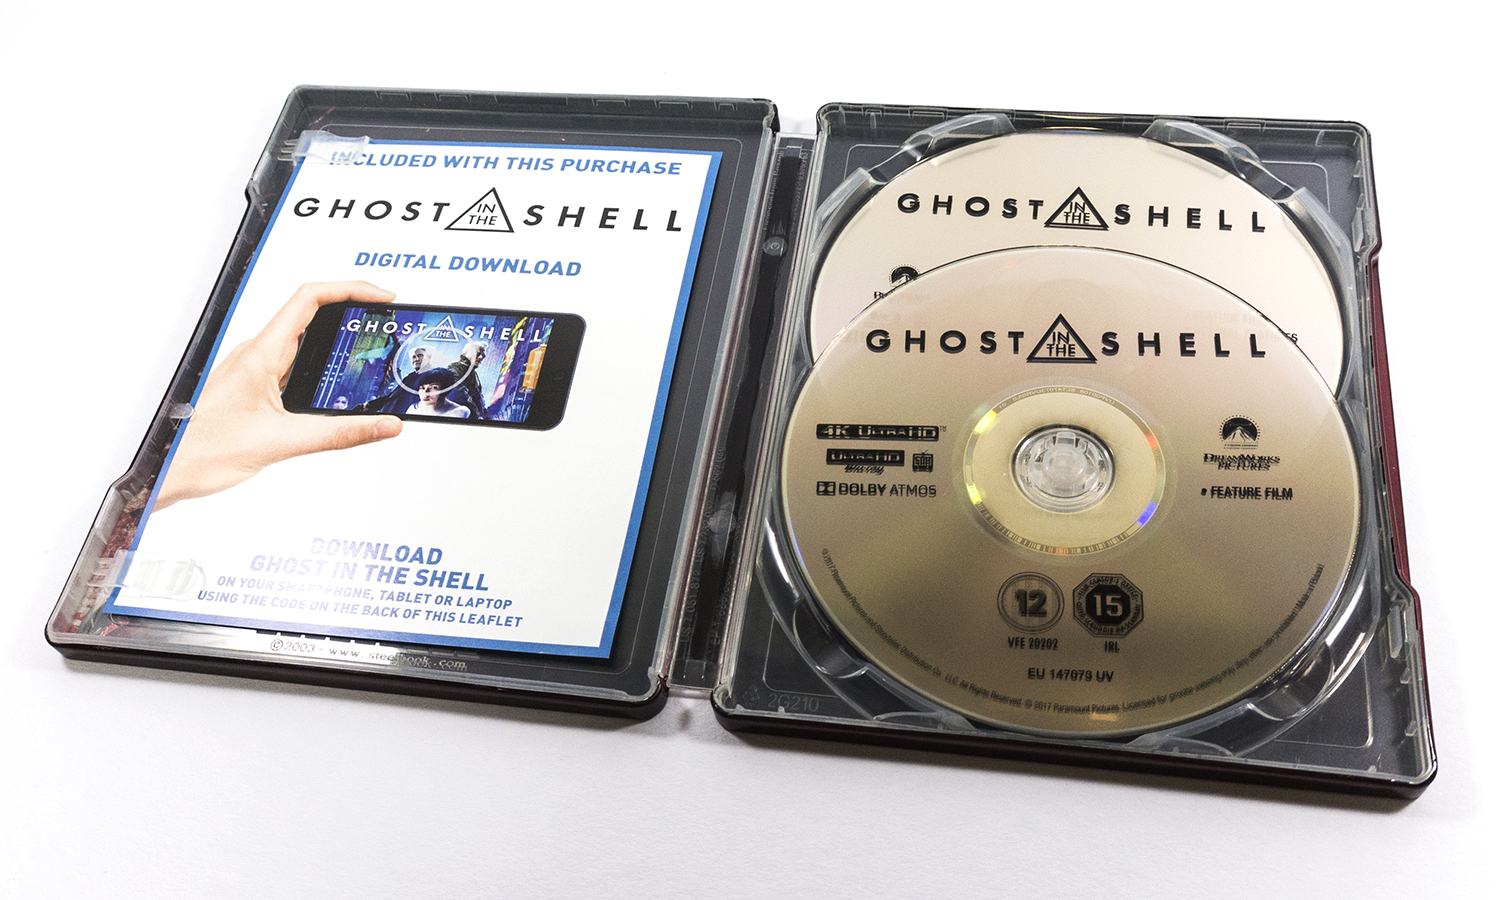 Ghost in the Shell steelbook ゴースト・イン・ザ・シェル<br /> スチールブック